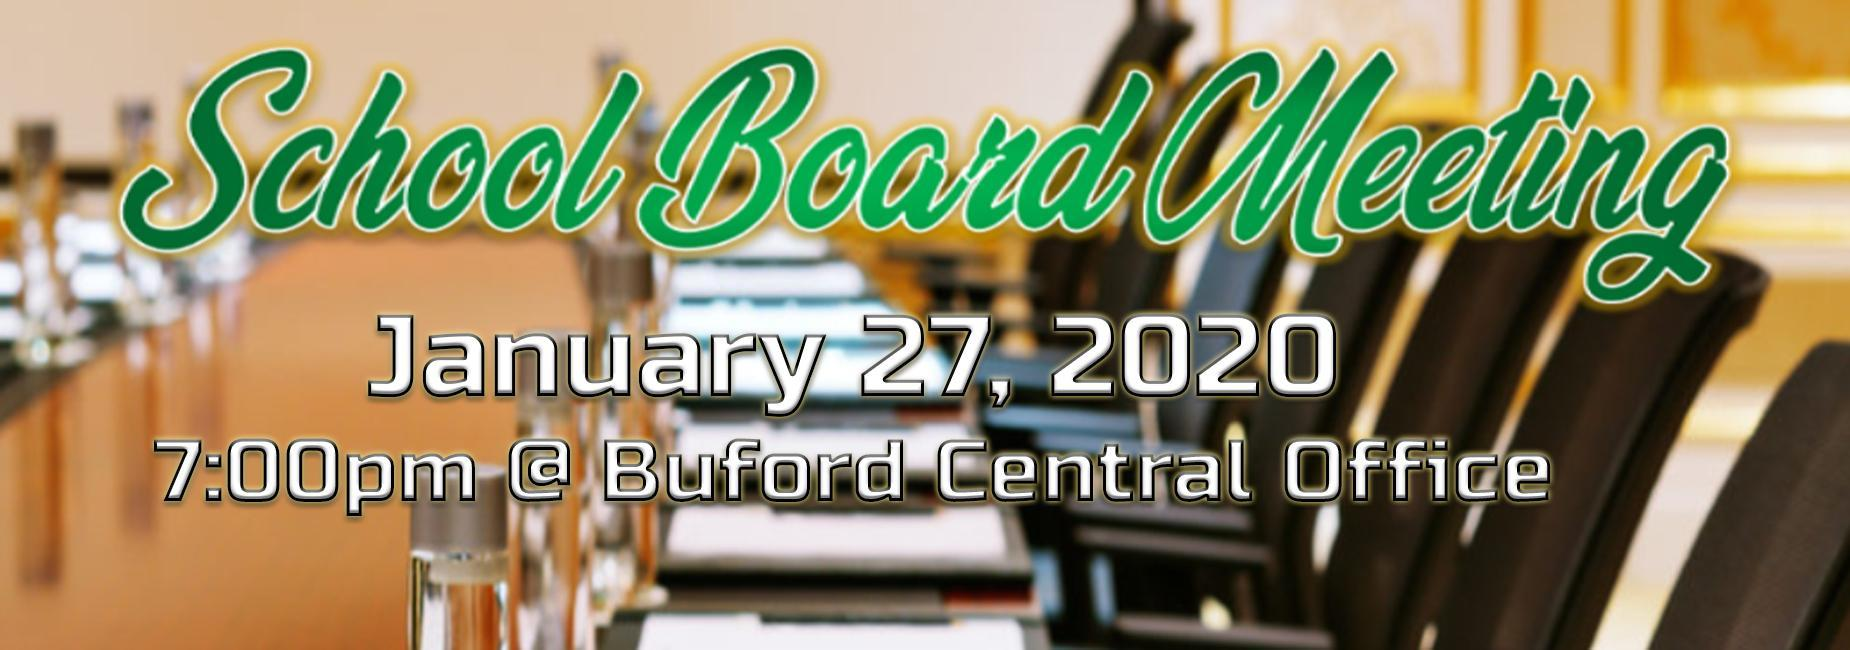 School Board Meeting on January 27 at 7:00 pm at the Buford Central Office